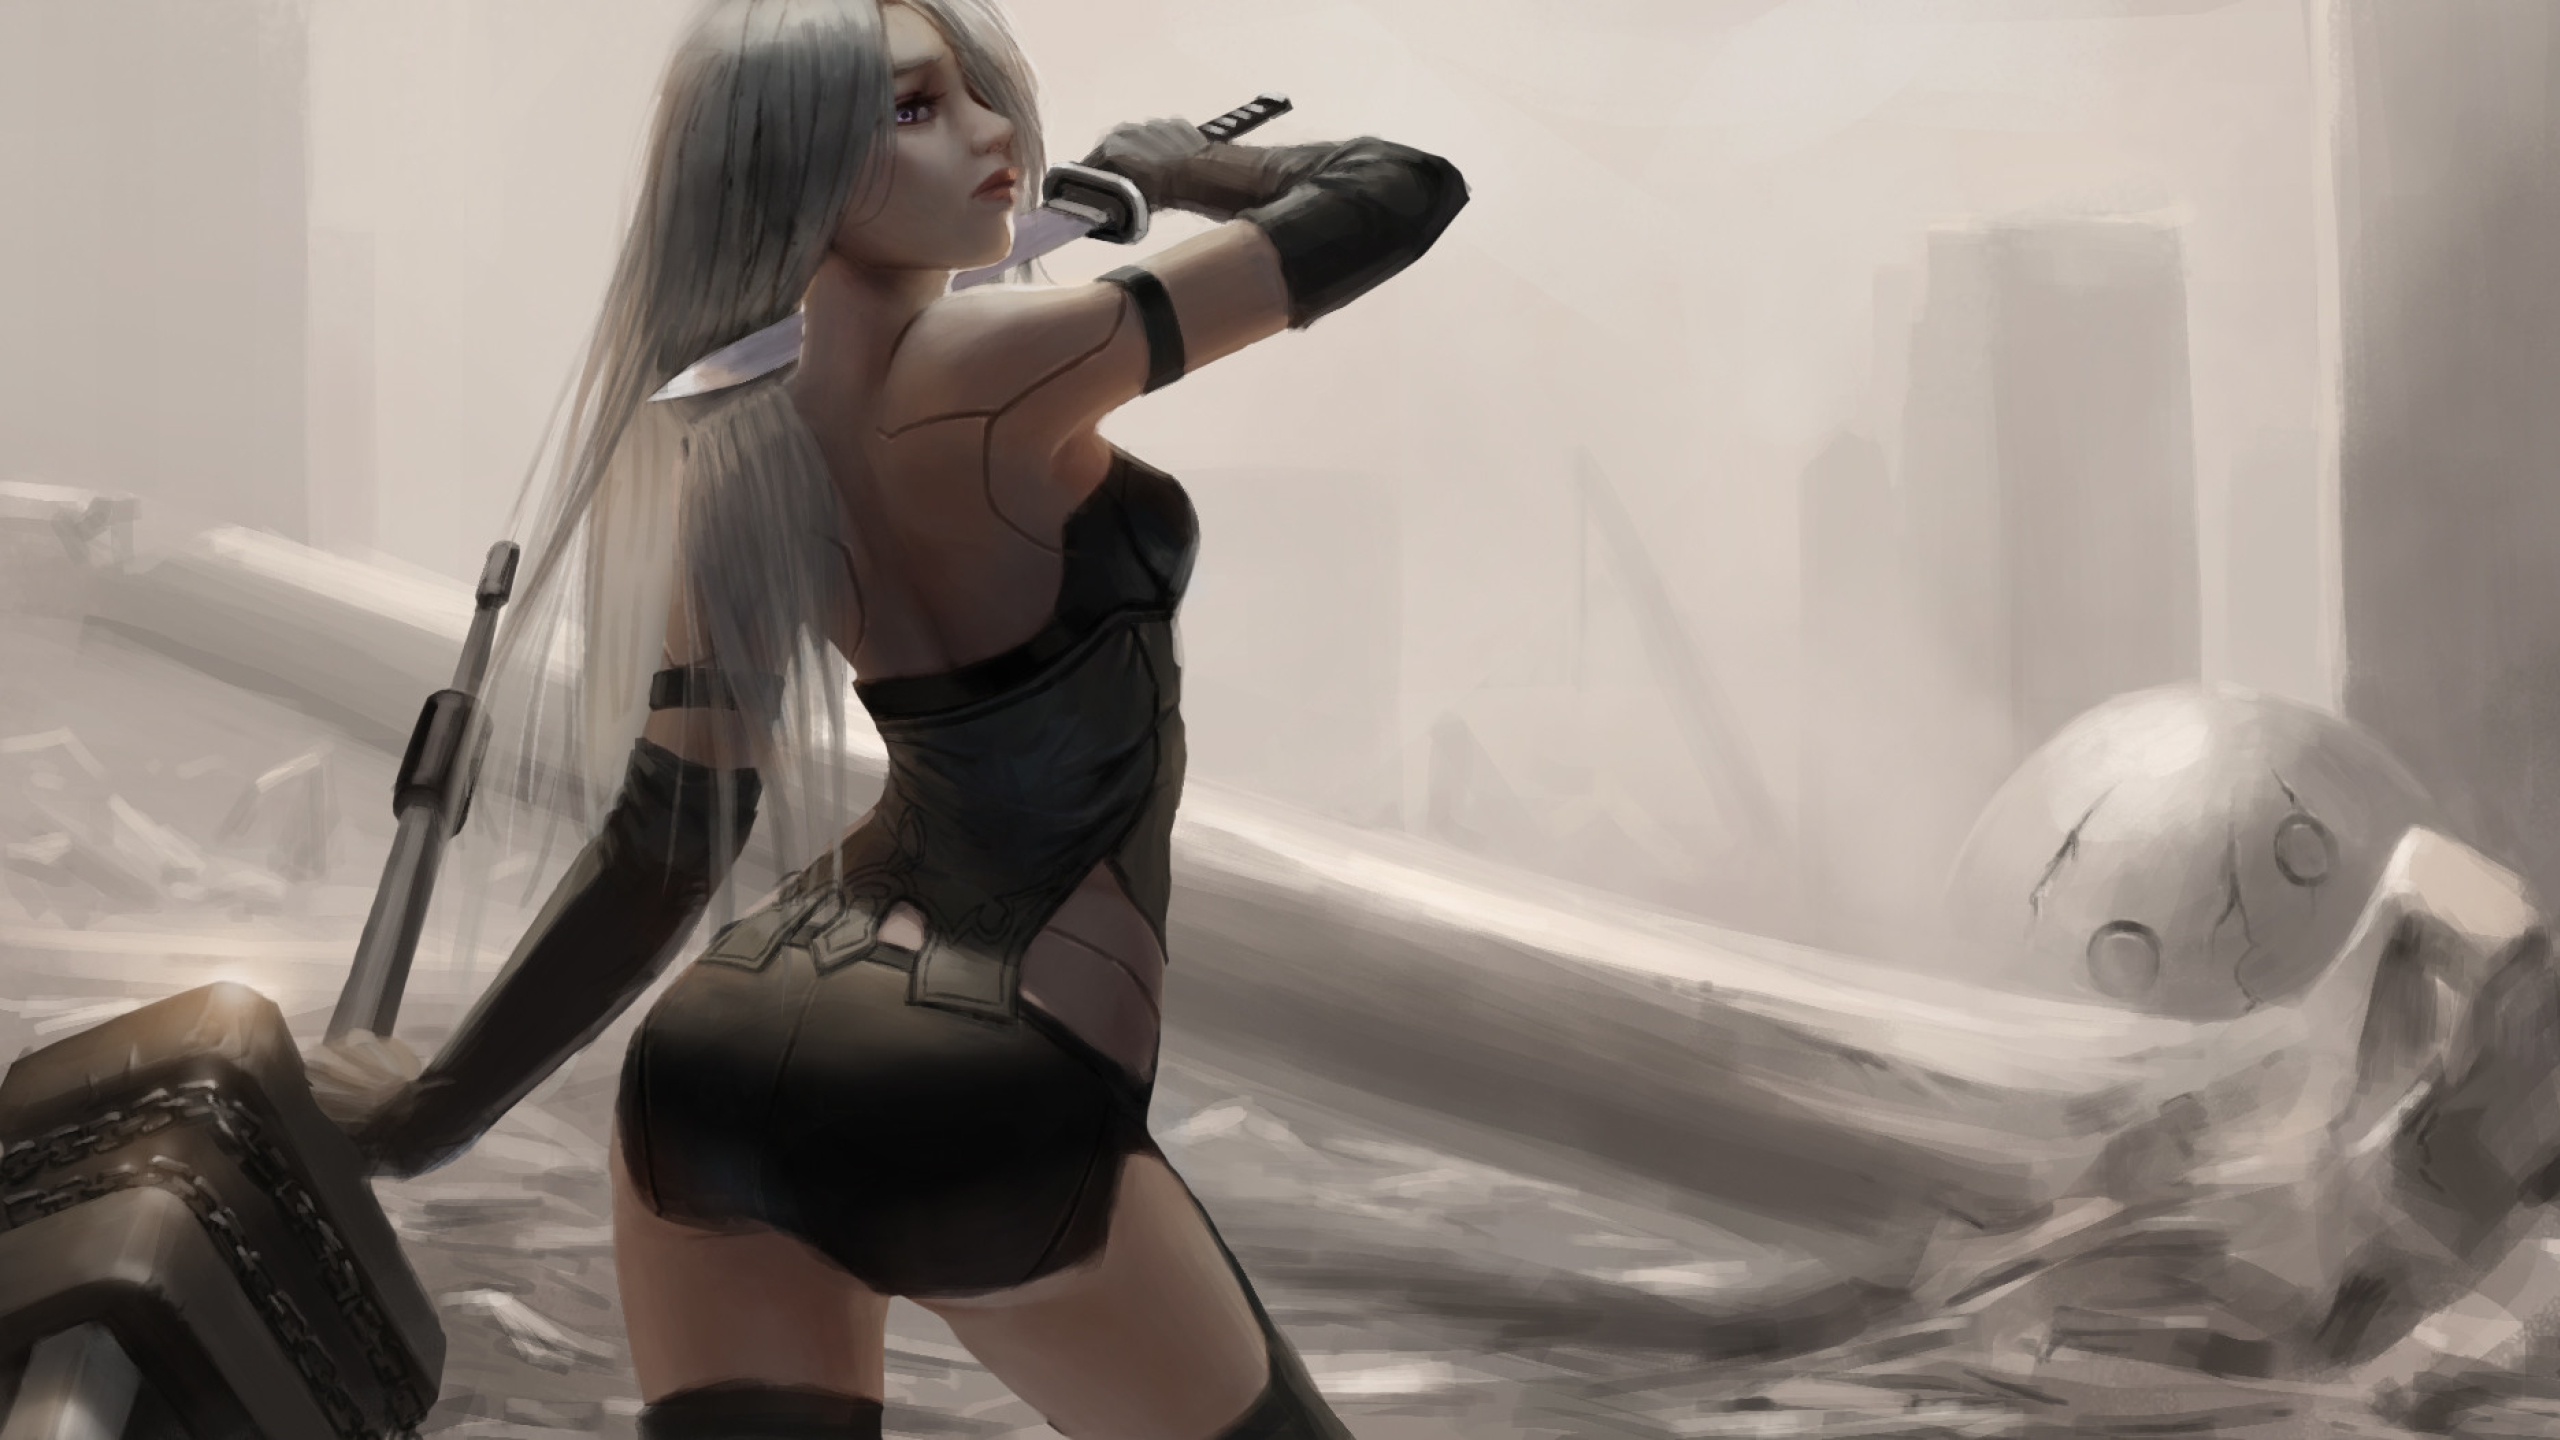 Nier Automata Fan Art Wallpaper 01 1920x1080: Nier Automata Fan Art, Full HD Wallpaper